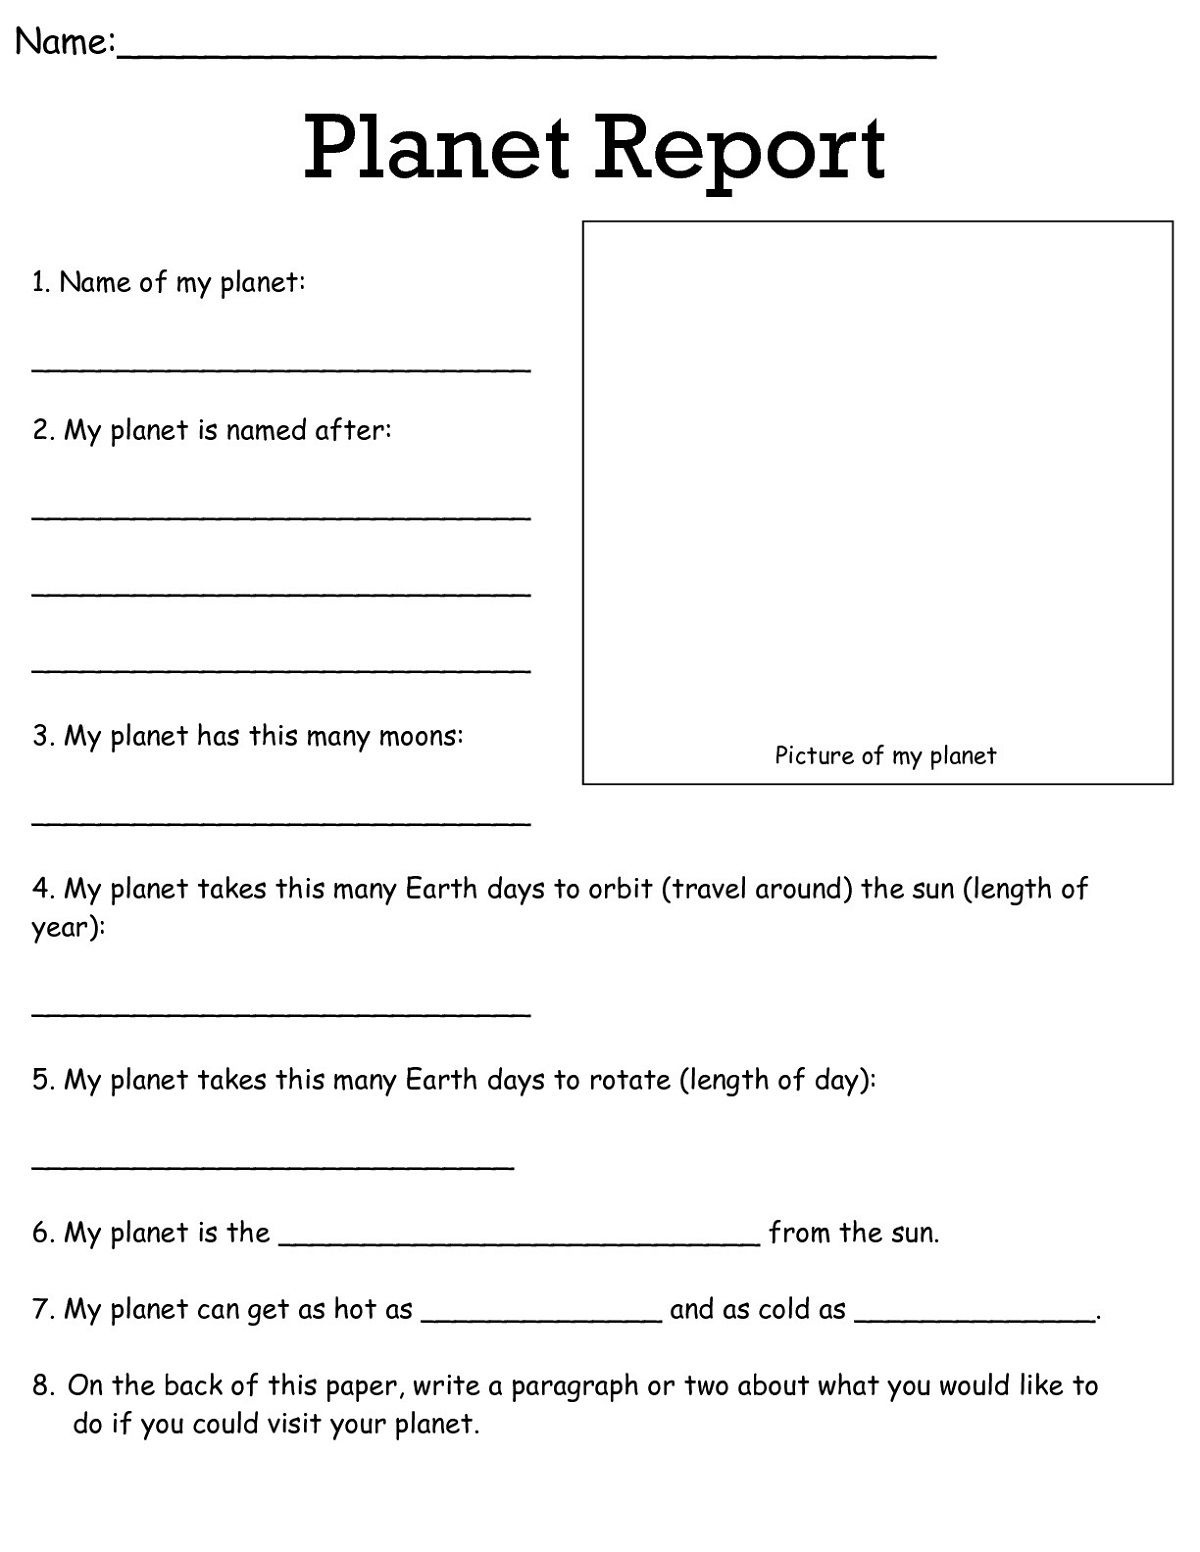 Free Printable Worksheets For Teachers Science | Learning Printable - Free Printable Science Worksheets